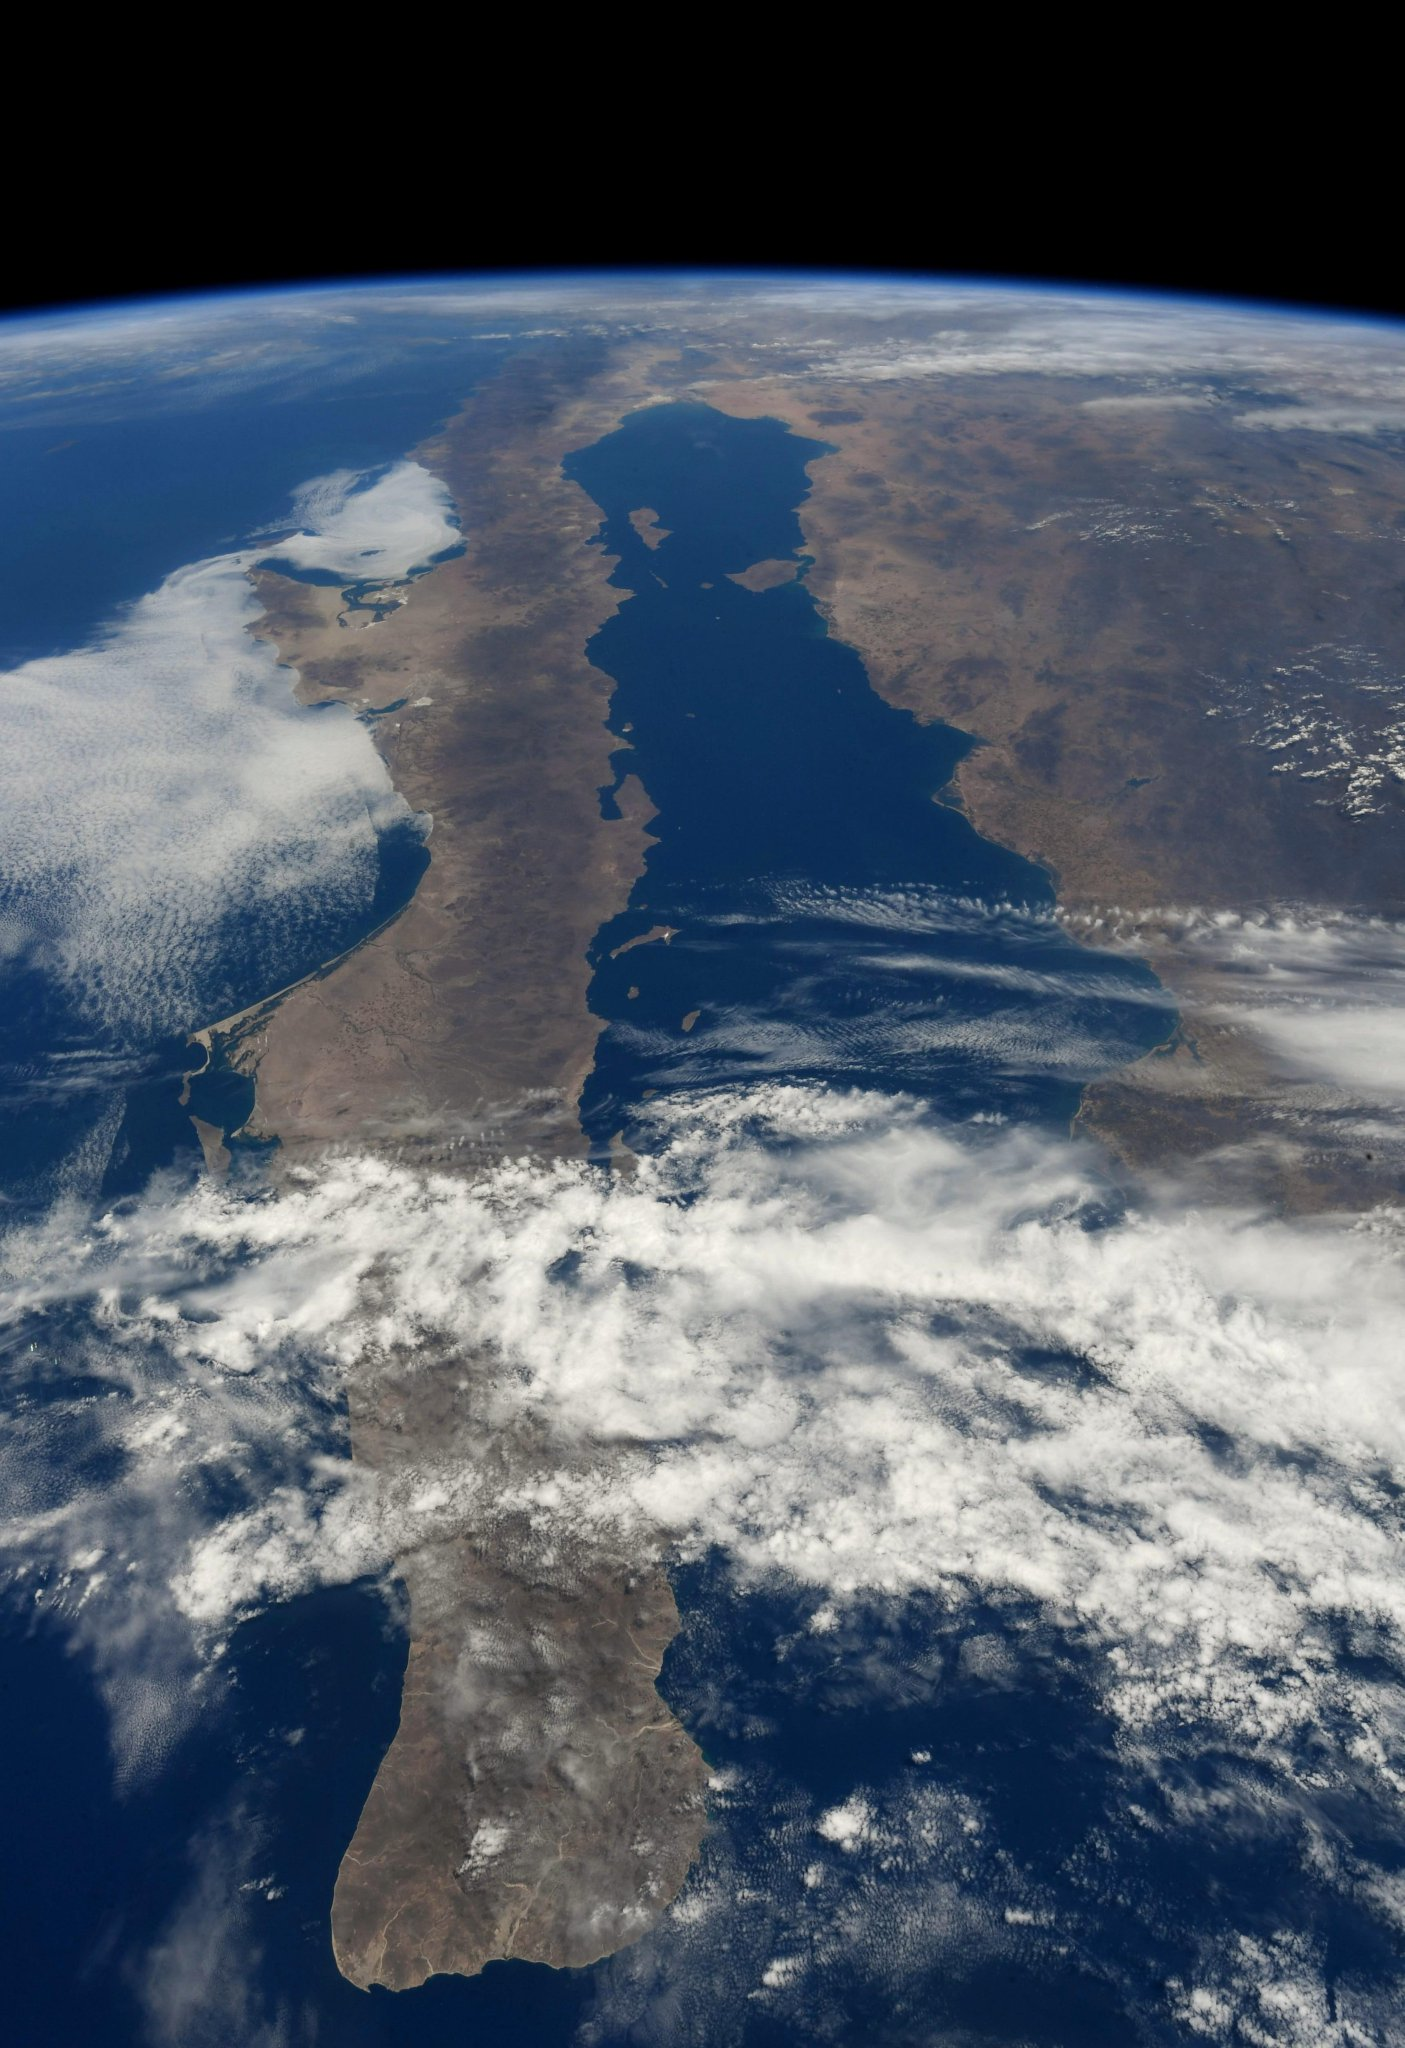 #Baja & the Sea of Cortez (Photo & Caption: Ricky Arnold / NASA)